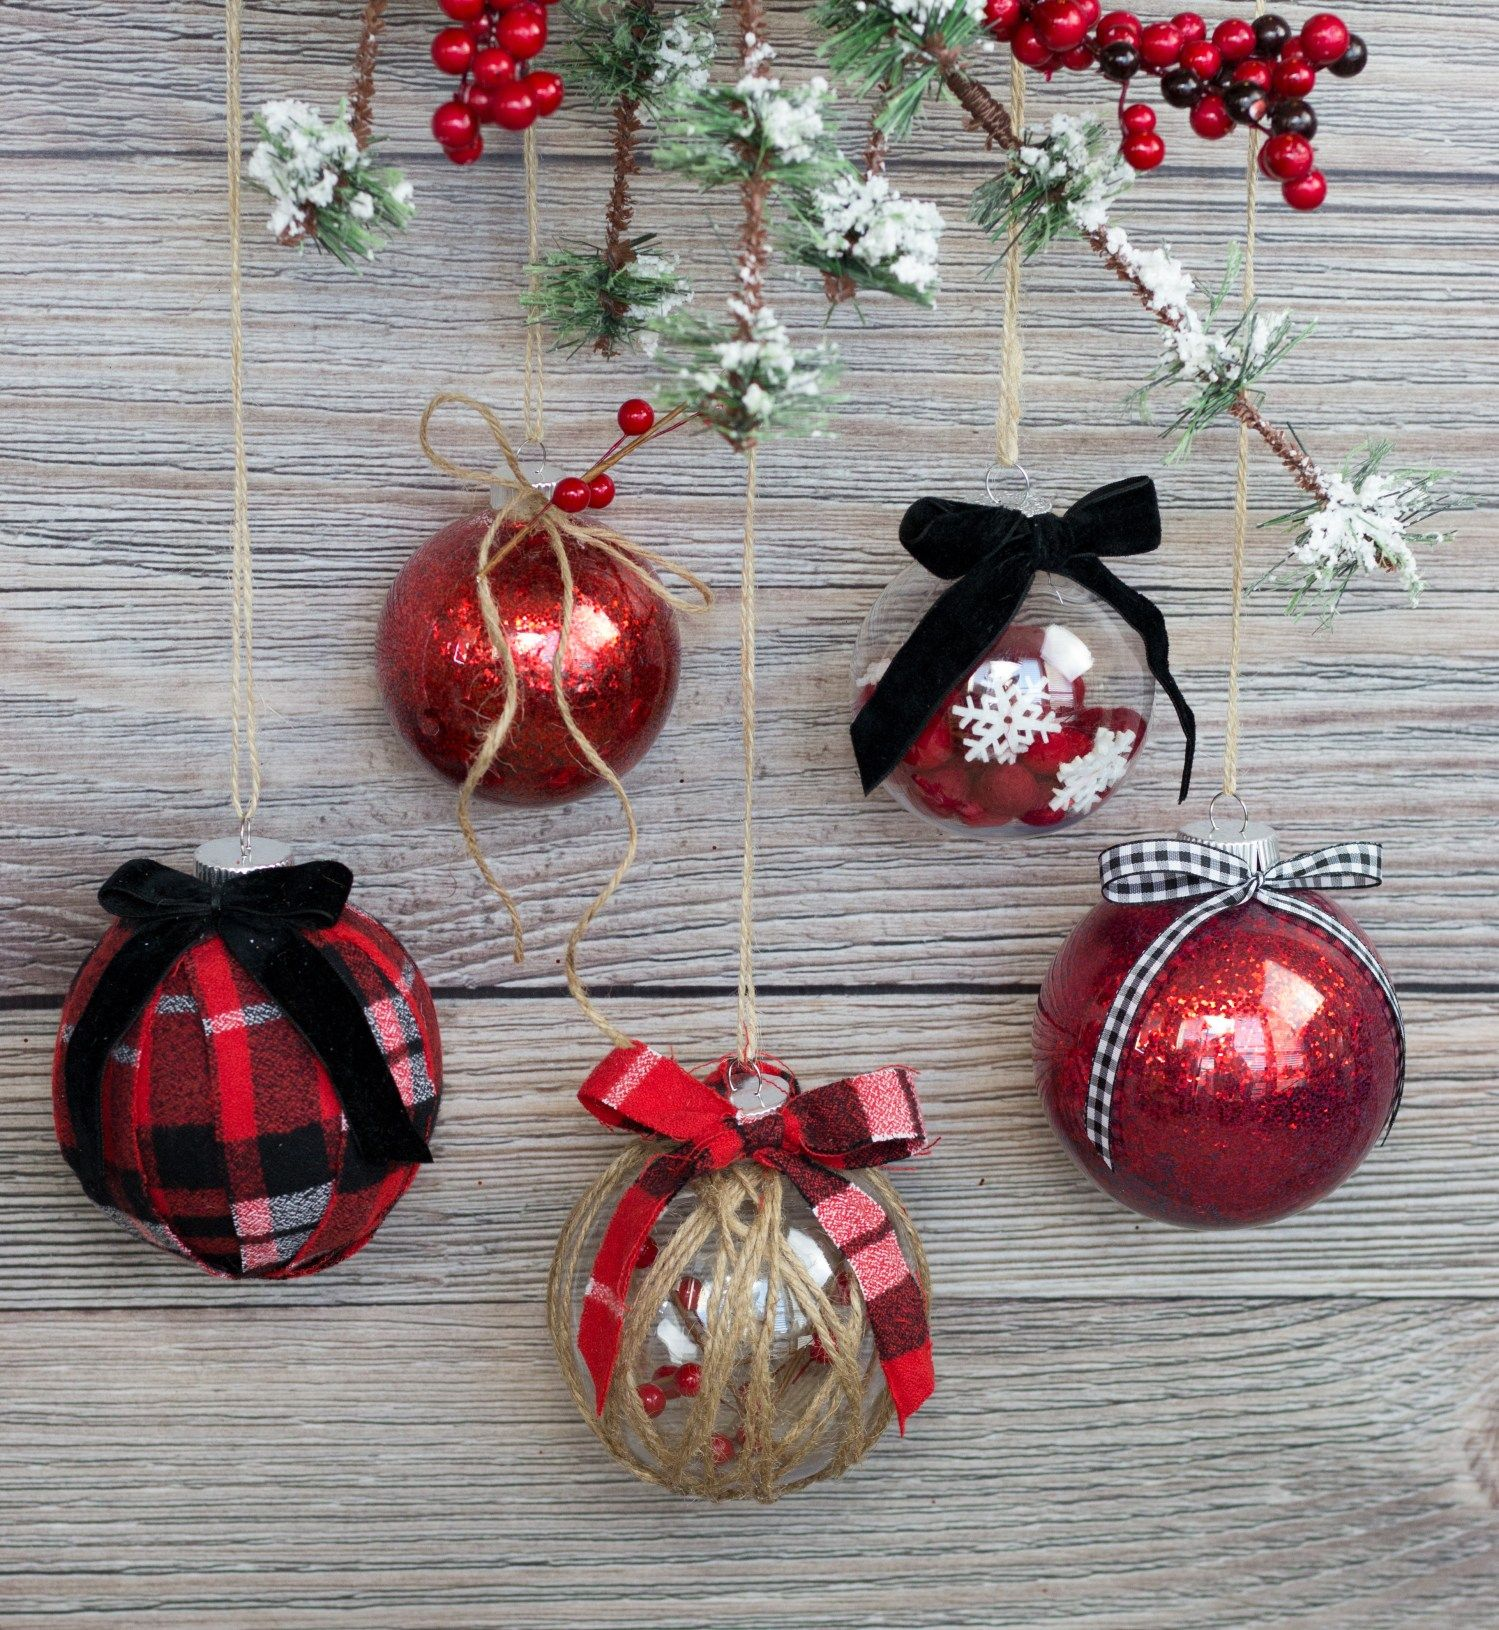 Decorating Clear Plastic Ornaments For Christmas Sweet Red Poppy Diy Christmas Ornaments Easy Clear Christmas Ornaments Homemade Christmas Ornaments Diy